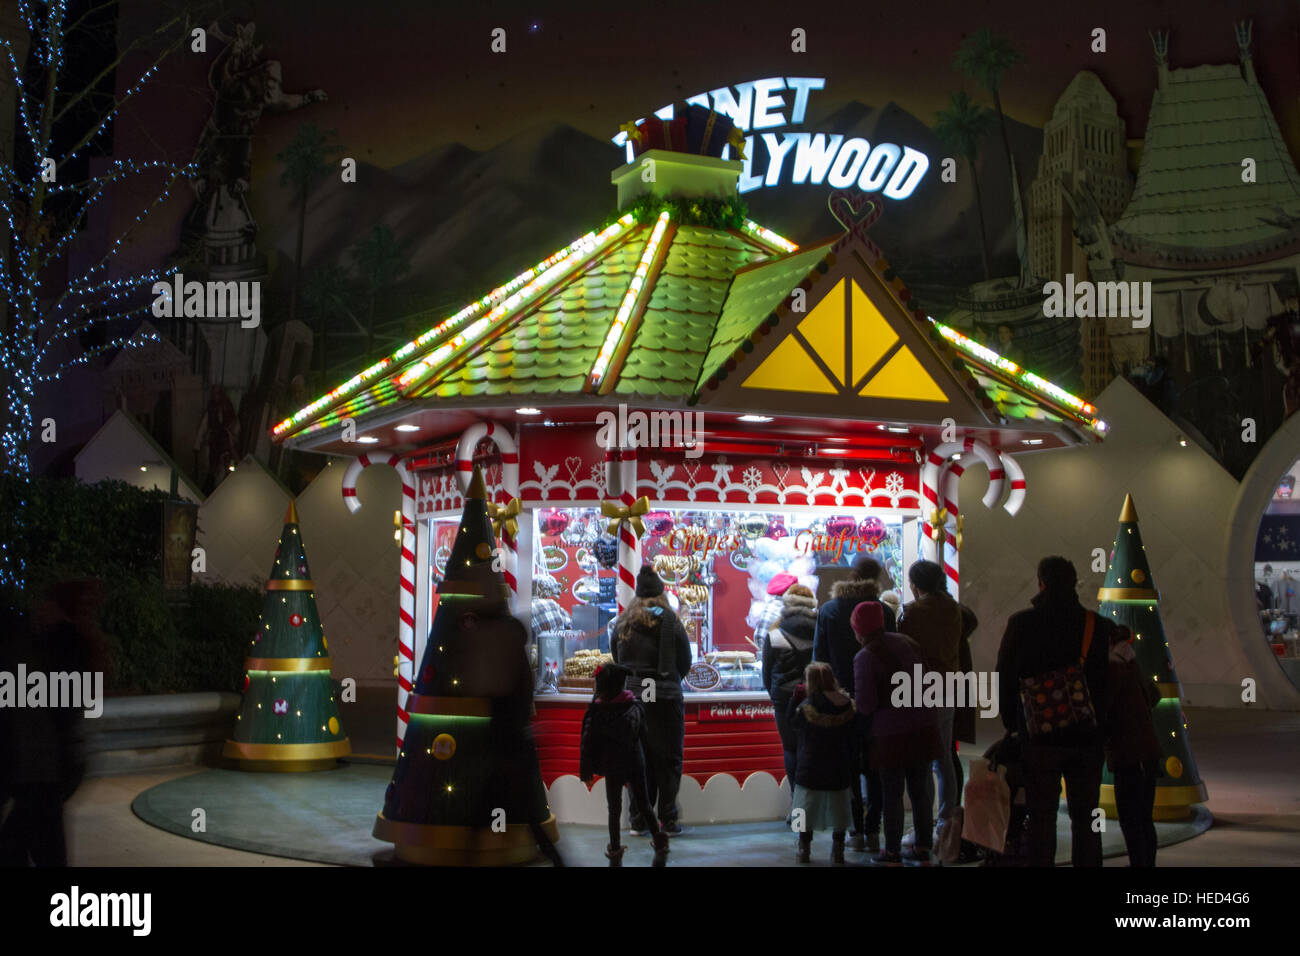 Disney Village at Christmas season Stock Photo